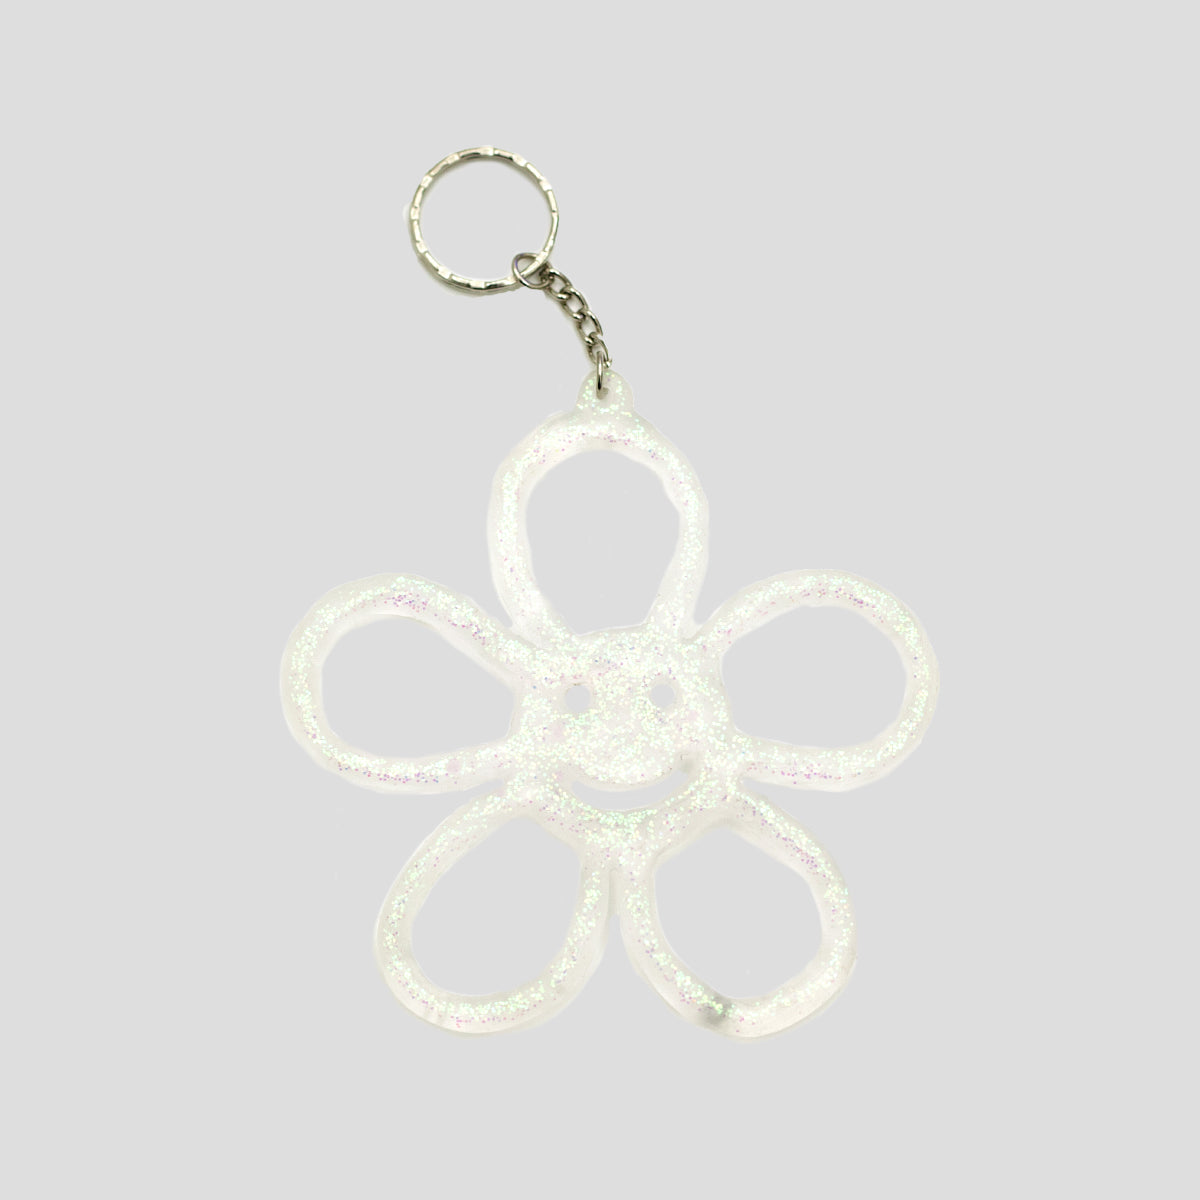 HAPPY FLOWER KEYRING TRANSLUCENT GLITTER